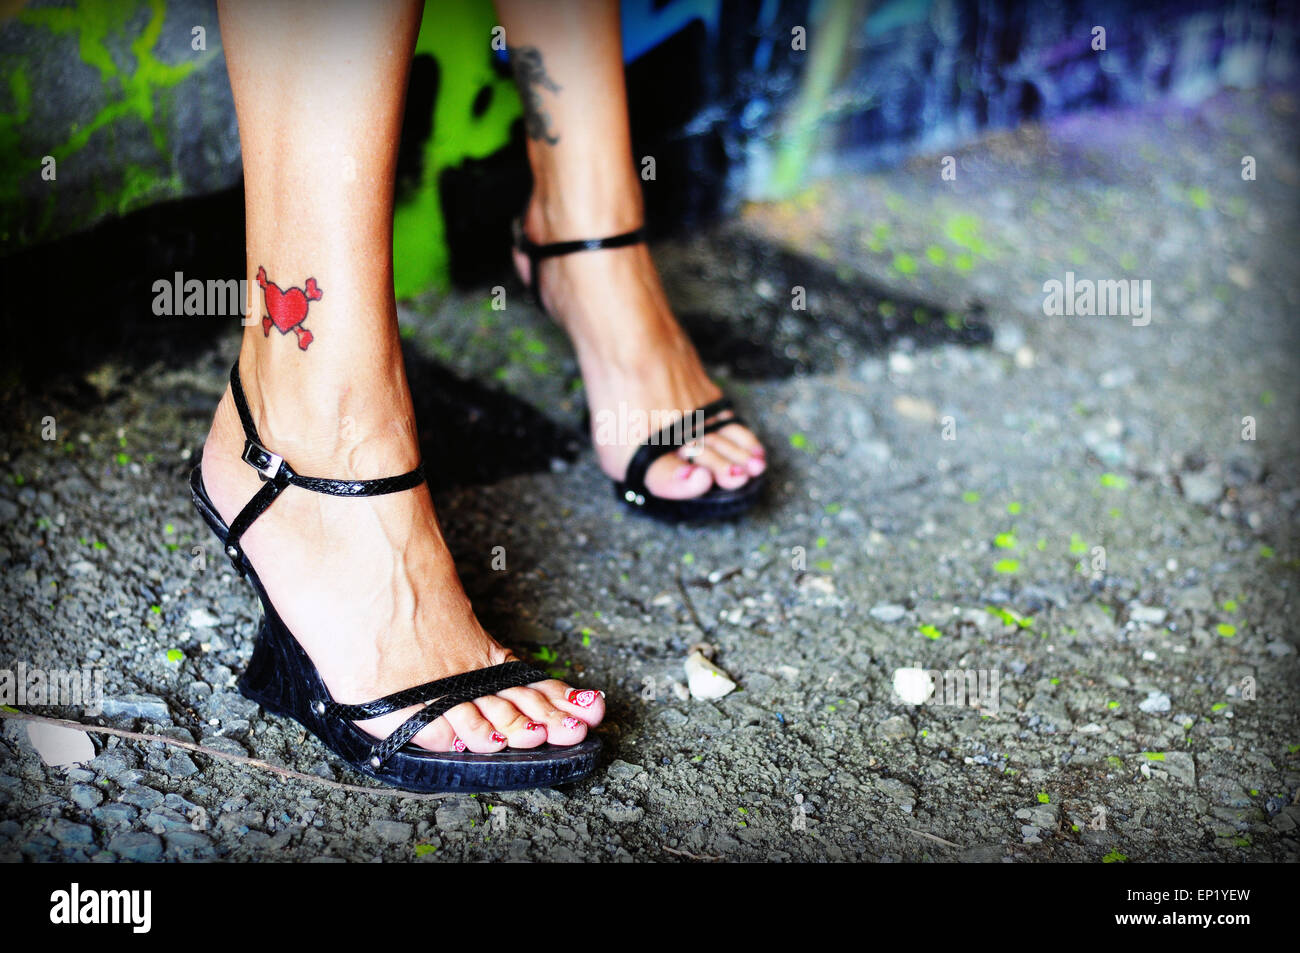 A woman wearing high heel shoes with a heart tattooed on her ankle - Stock Image